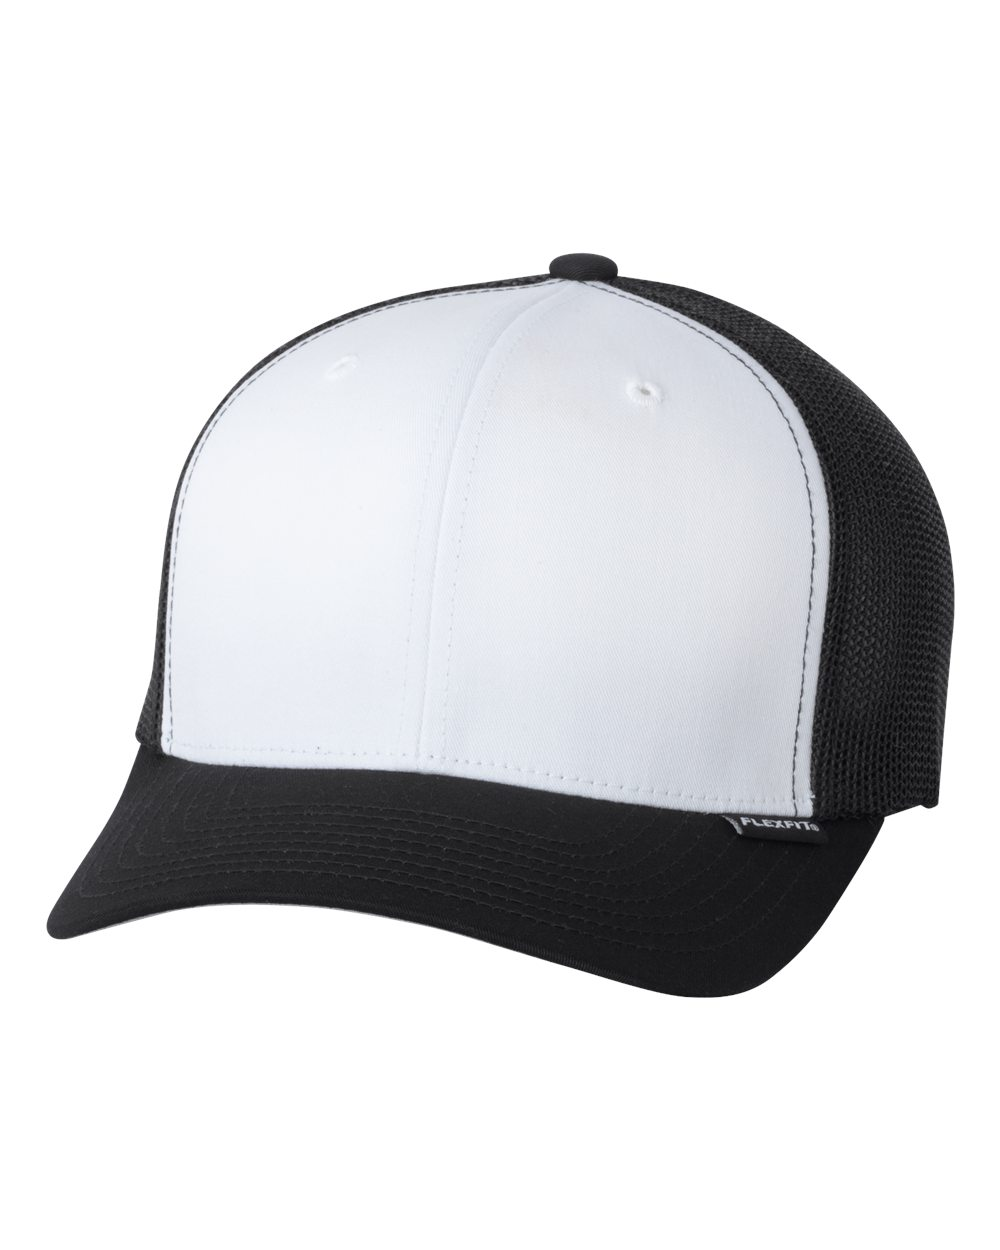 Caps PNG Black And White - 136446